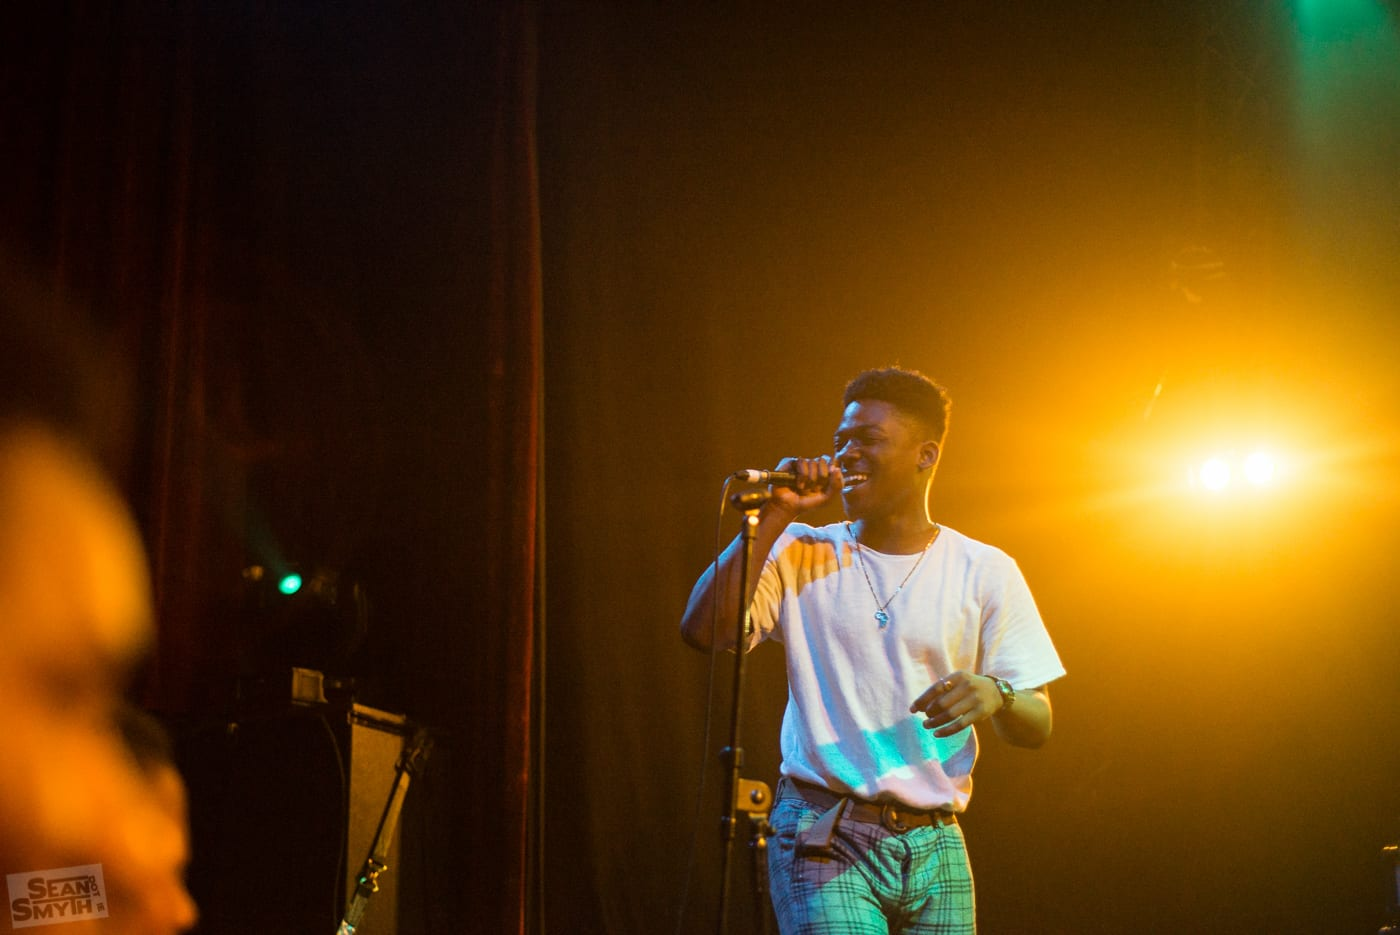 jafaris-at-the-button-factory-by-sean-smyth-28-9-16-1-of-8